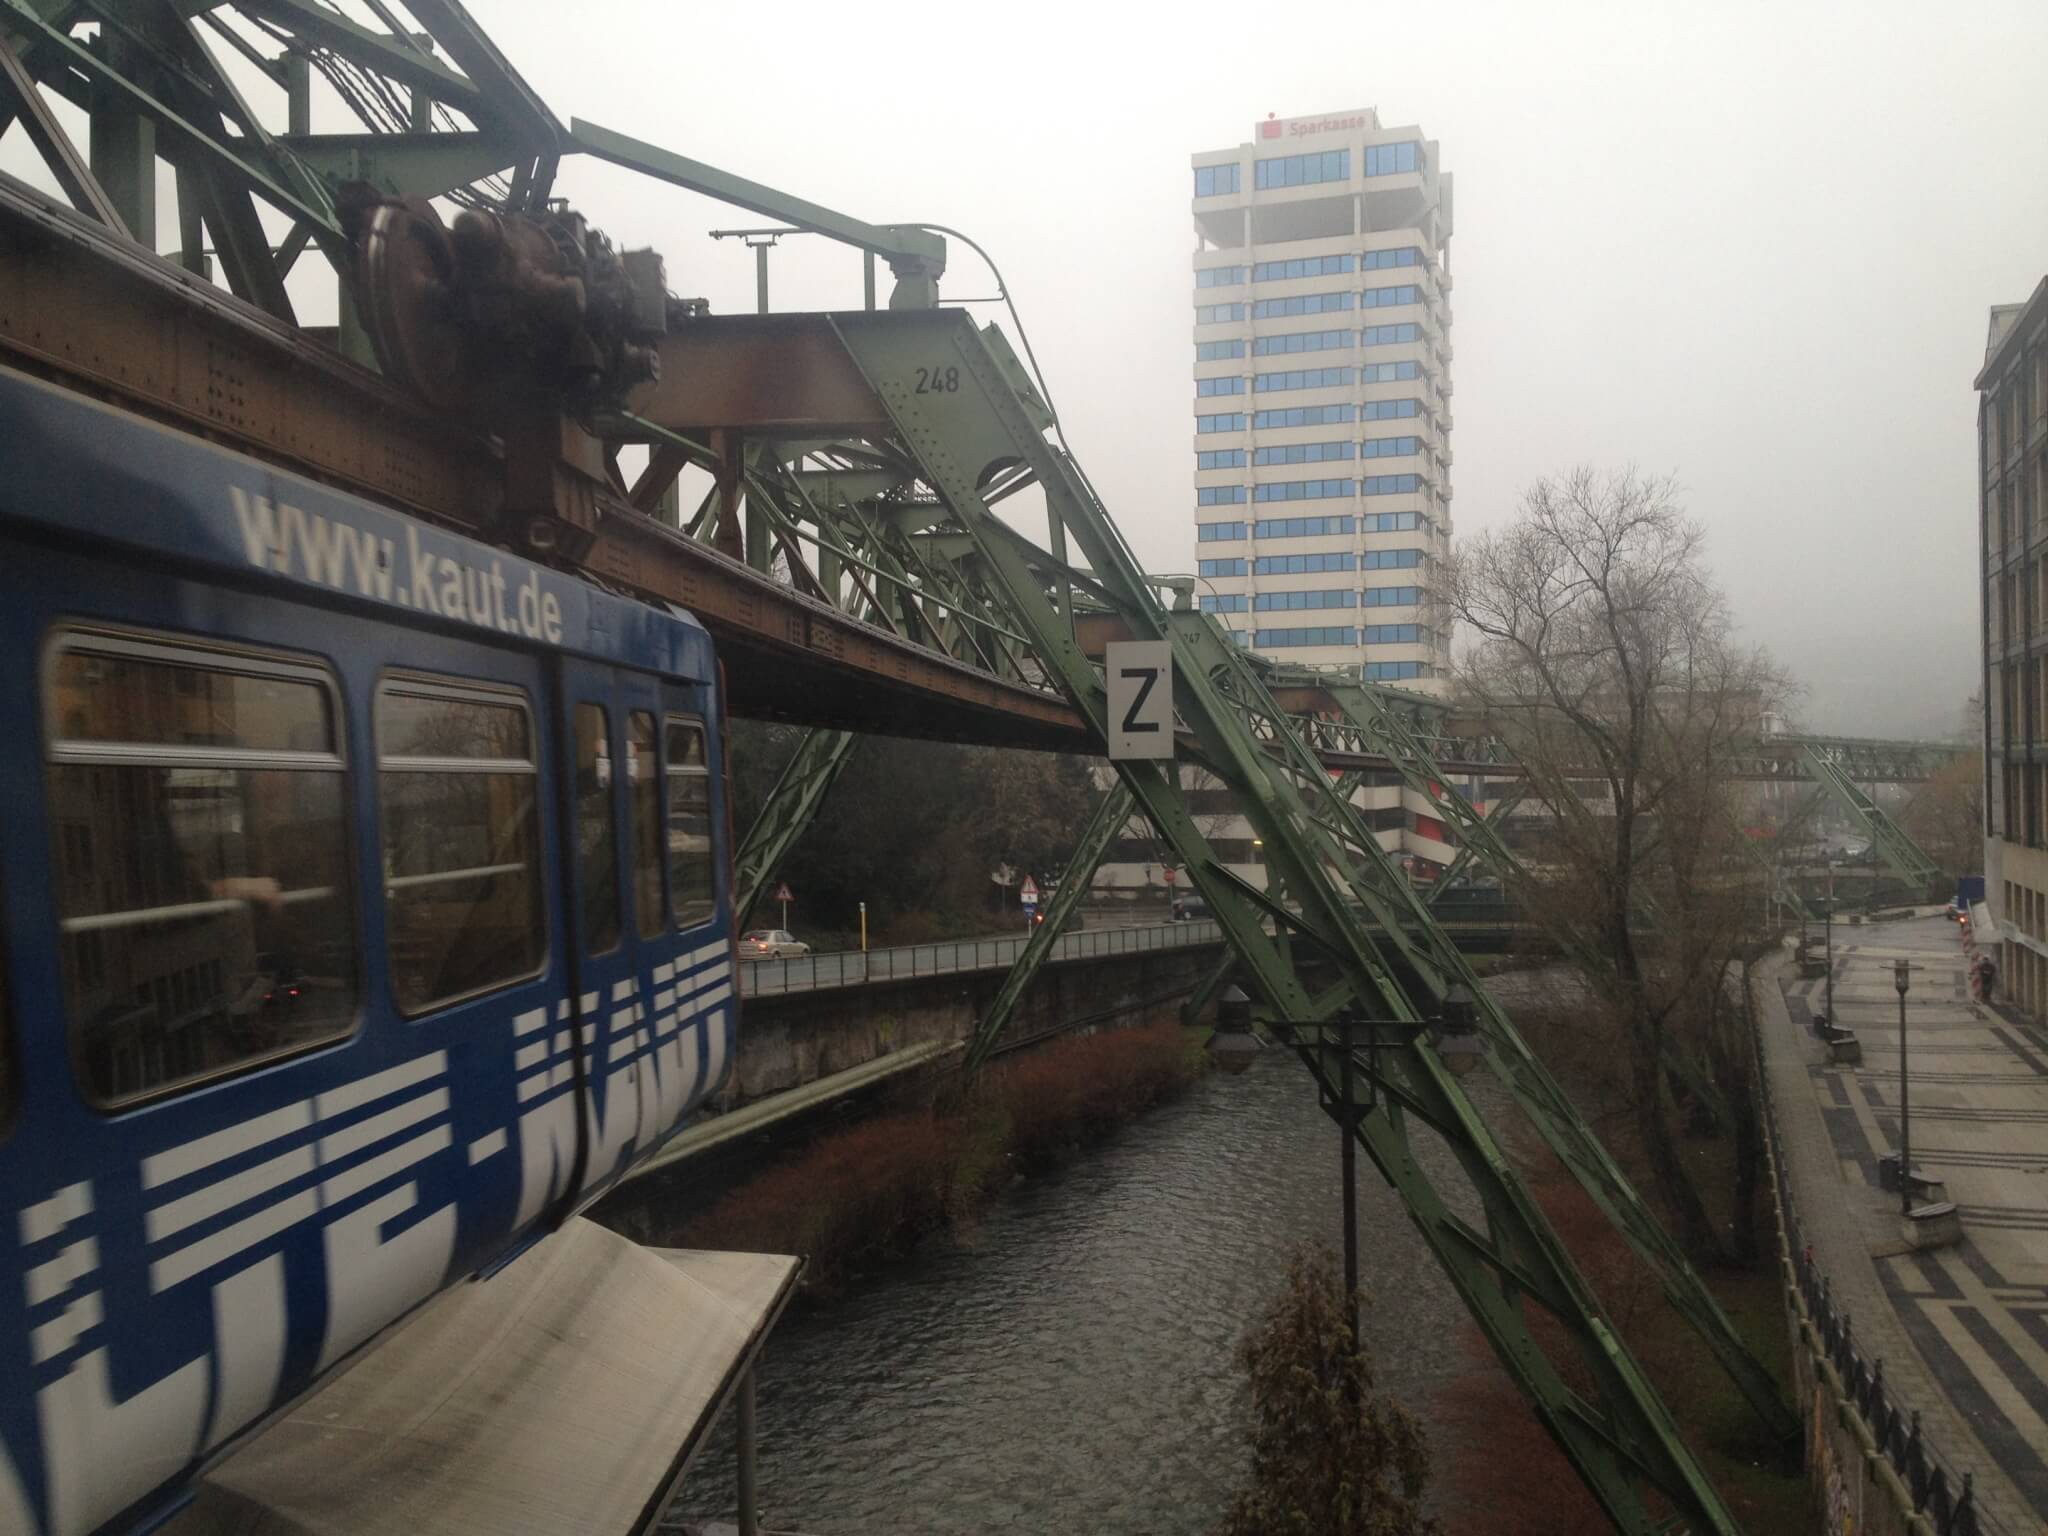 Suspension railway, Wuppertal